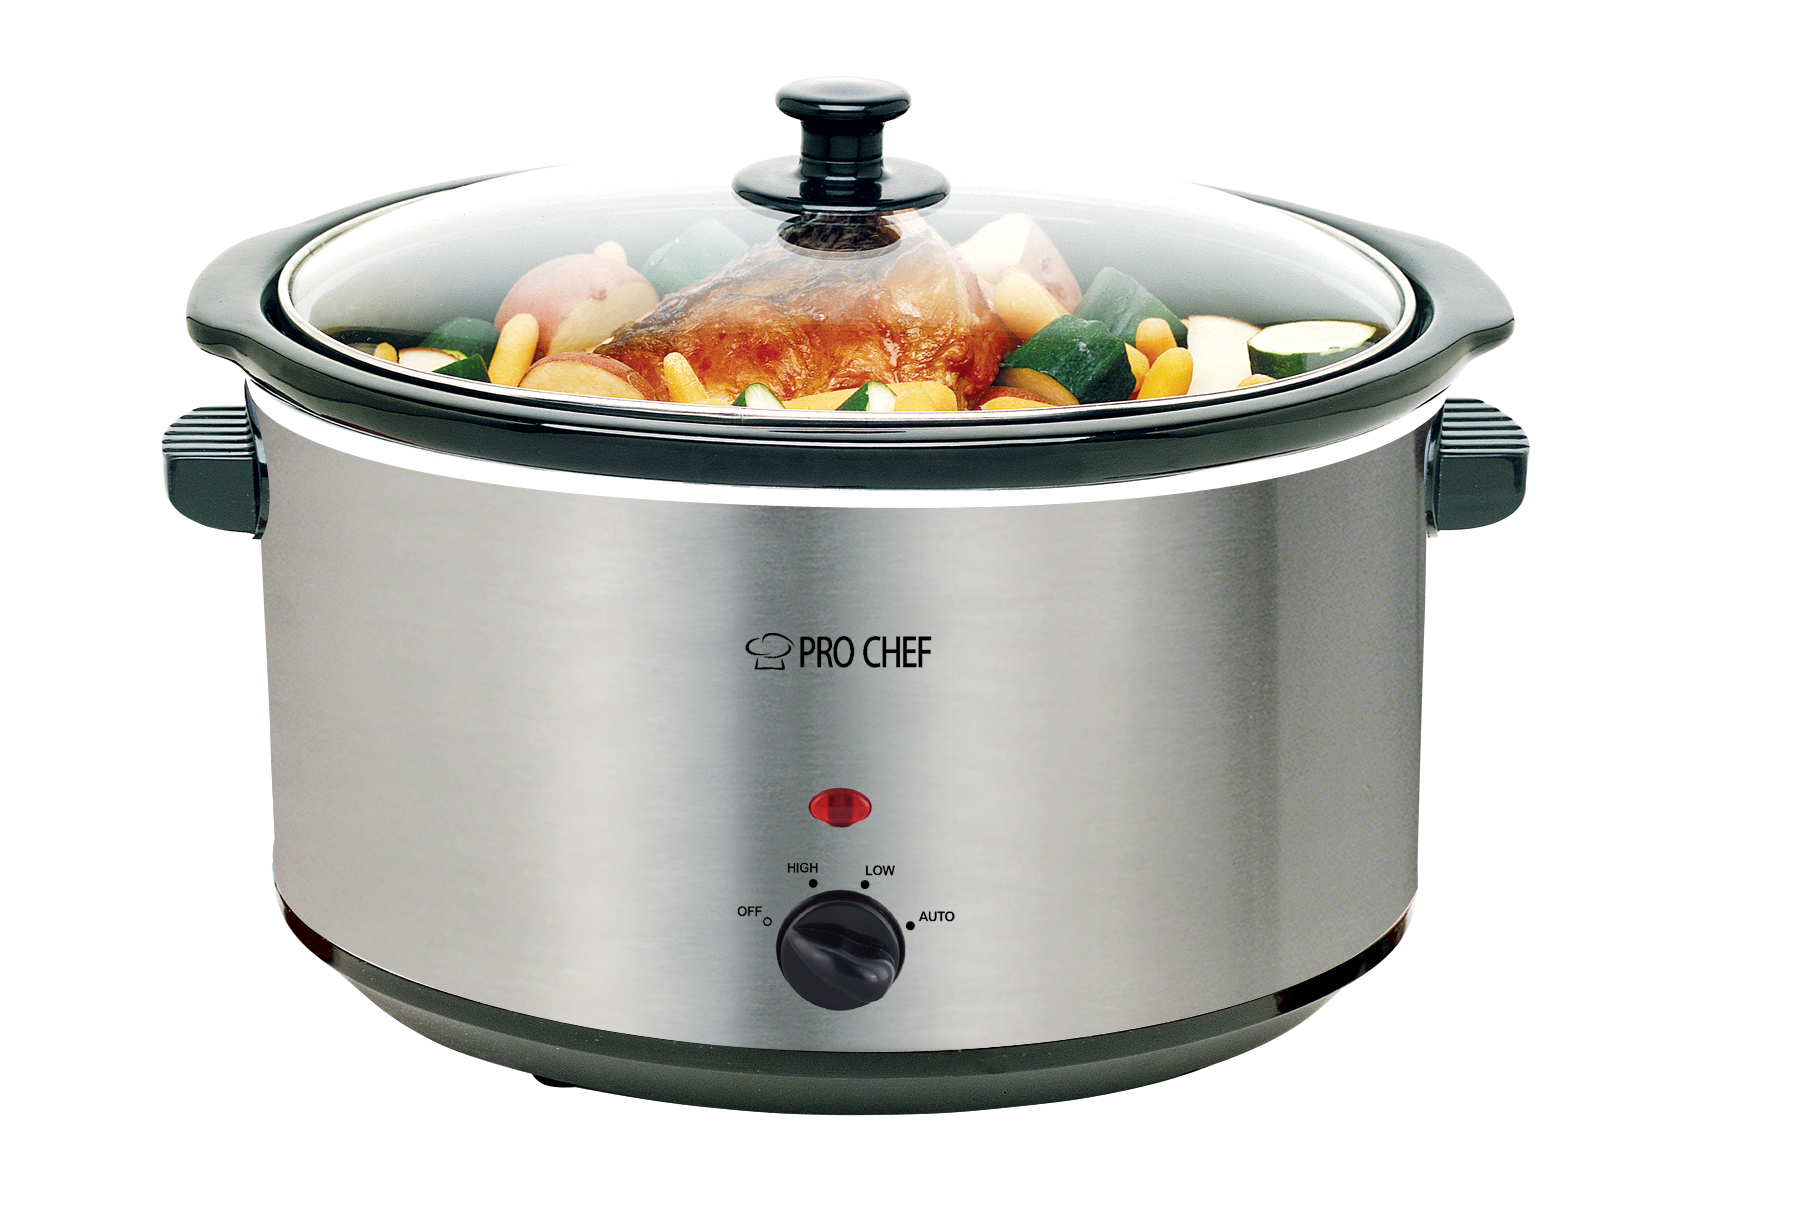 Pro Chef Oval Stainless Steel Slow Cooker